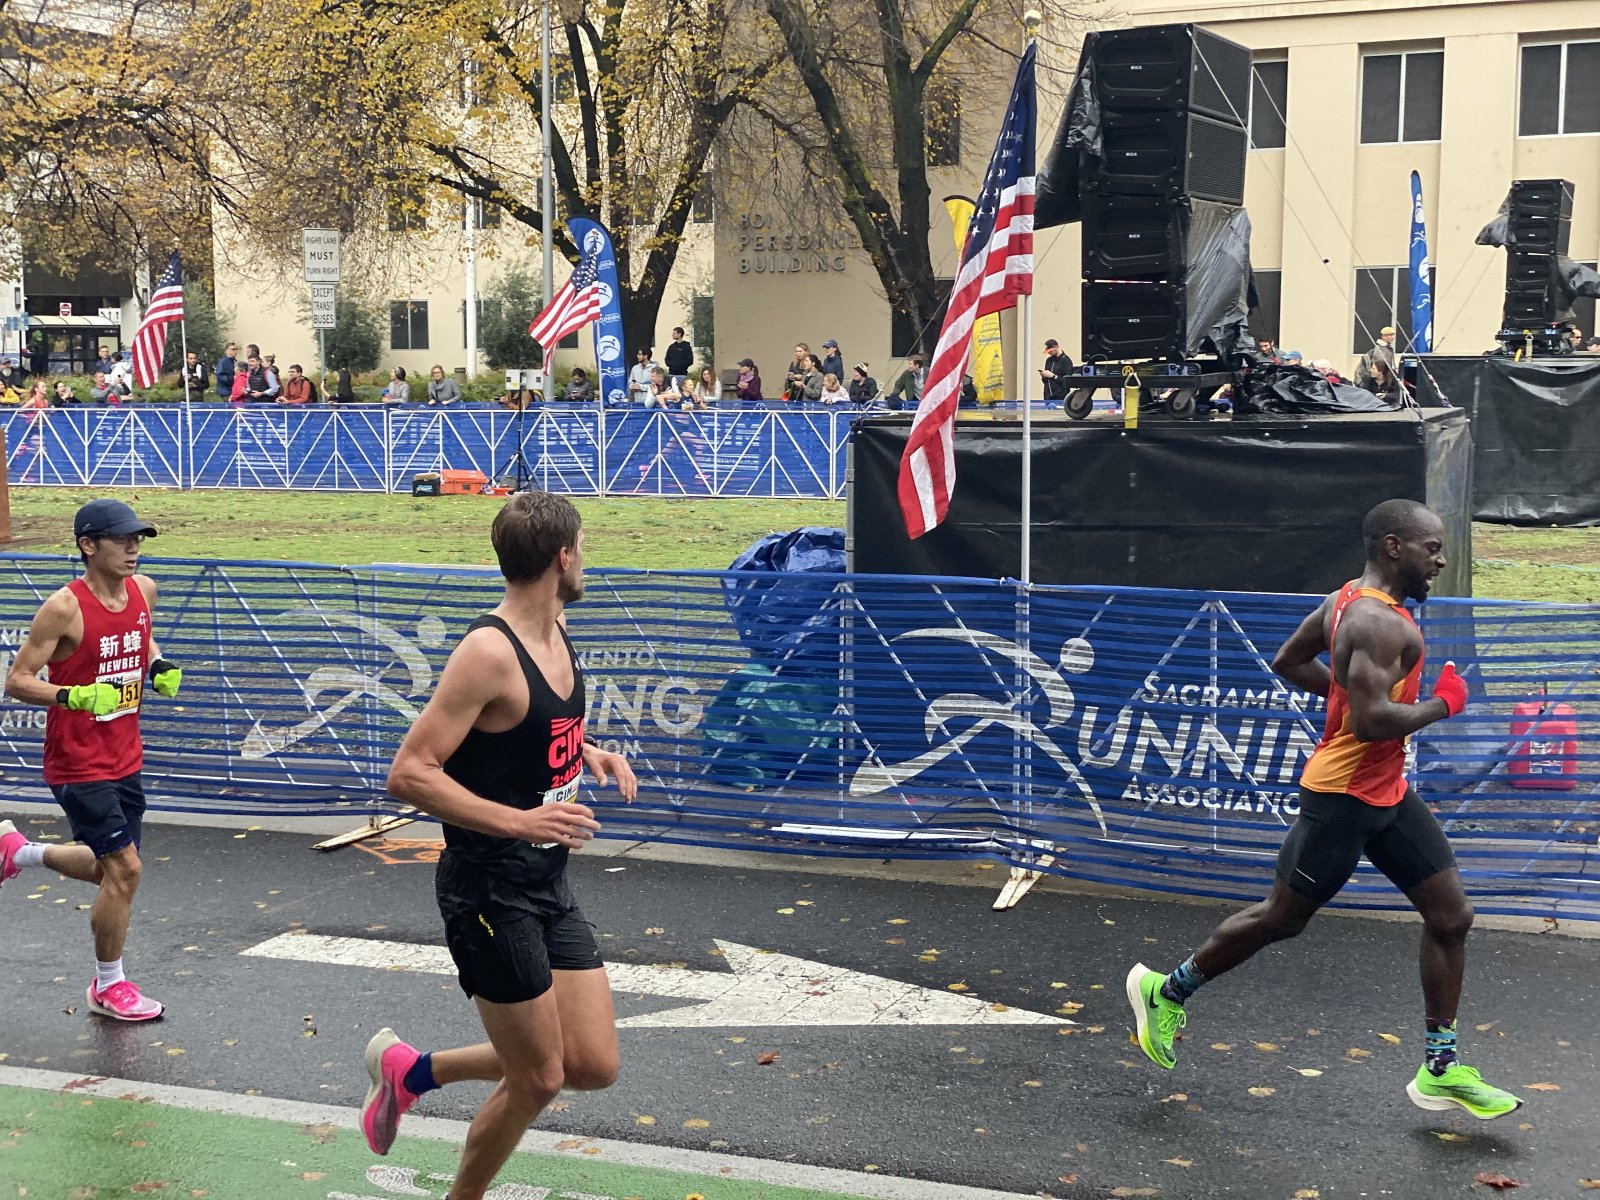 CIM pacer looking to the left at the women's finish line as he runs to the men's